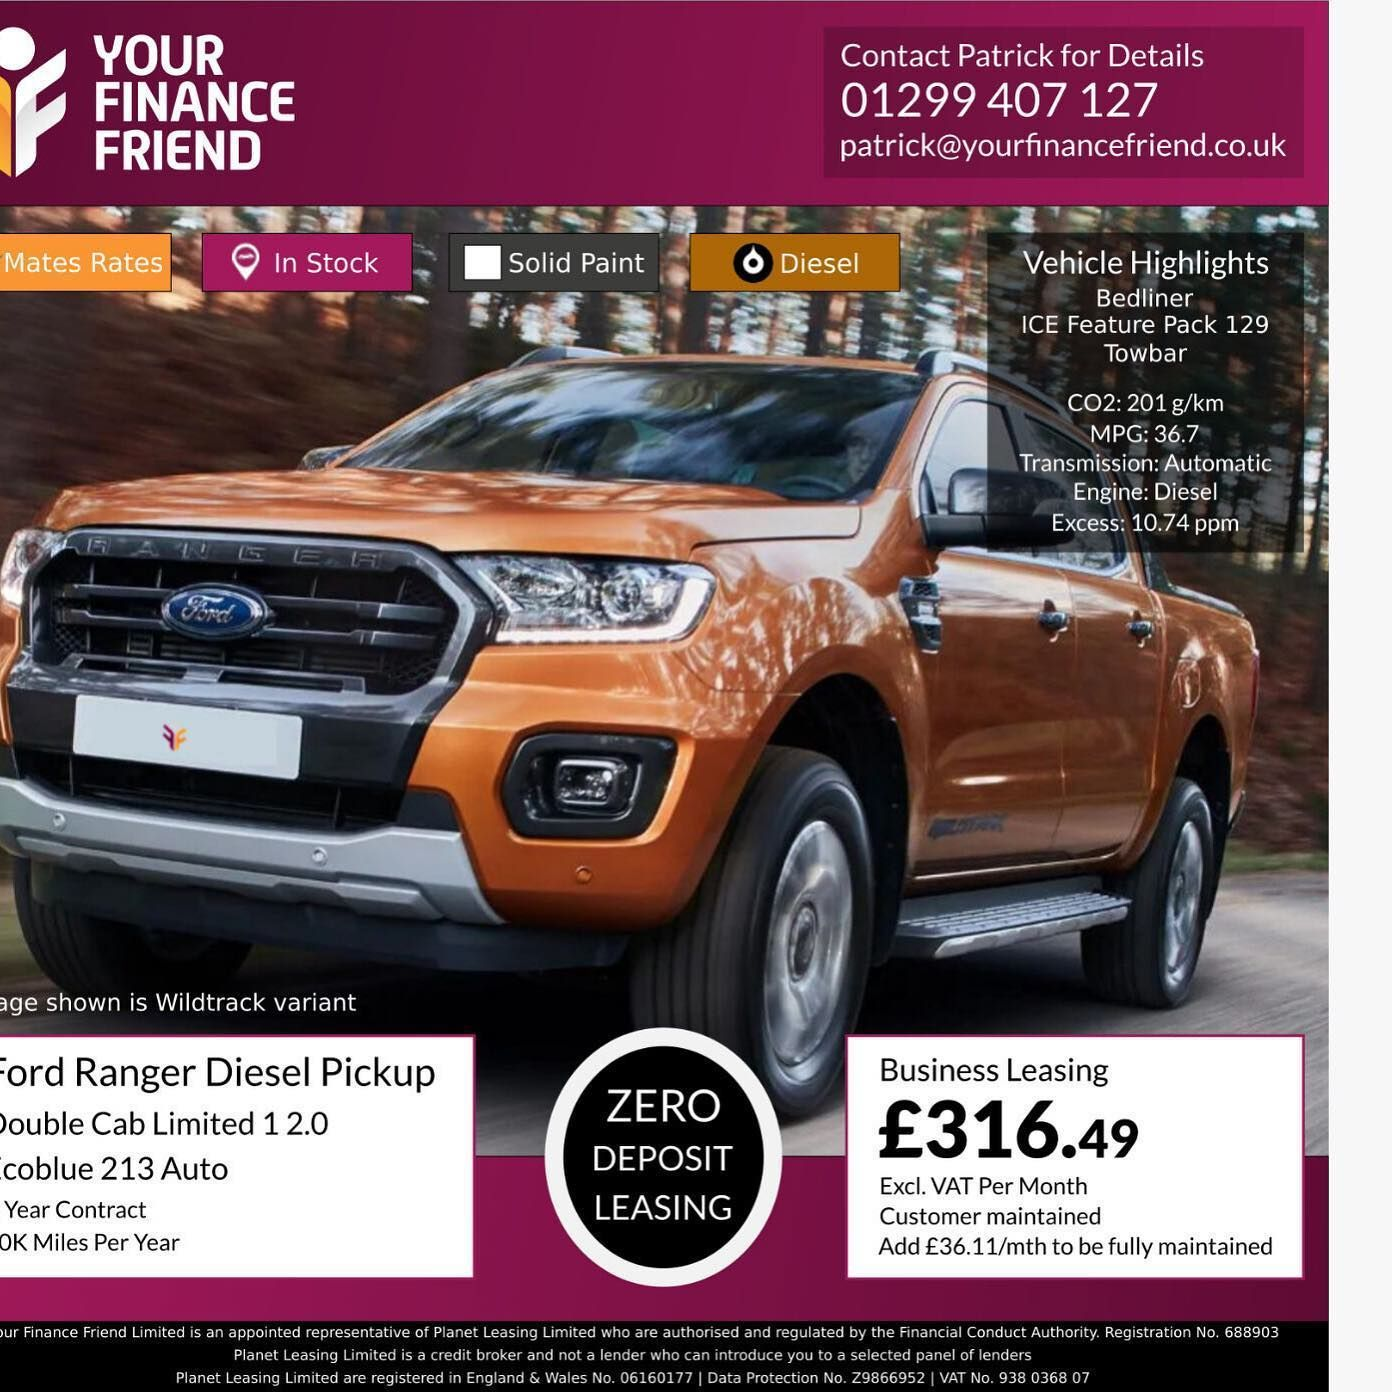 Ford ranger diesel pickup double cab limited 1 20